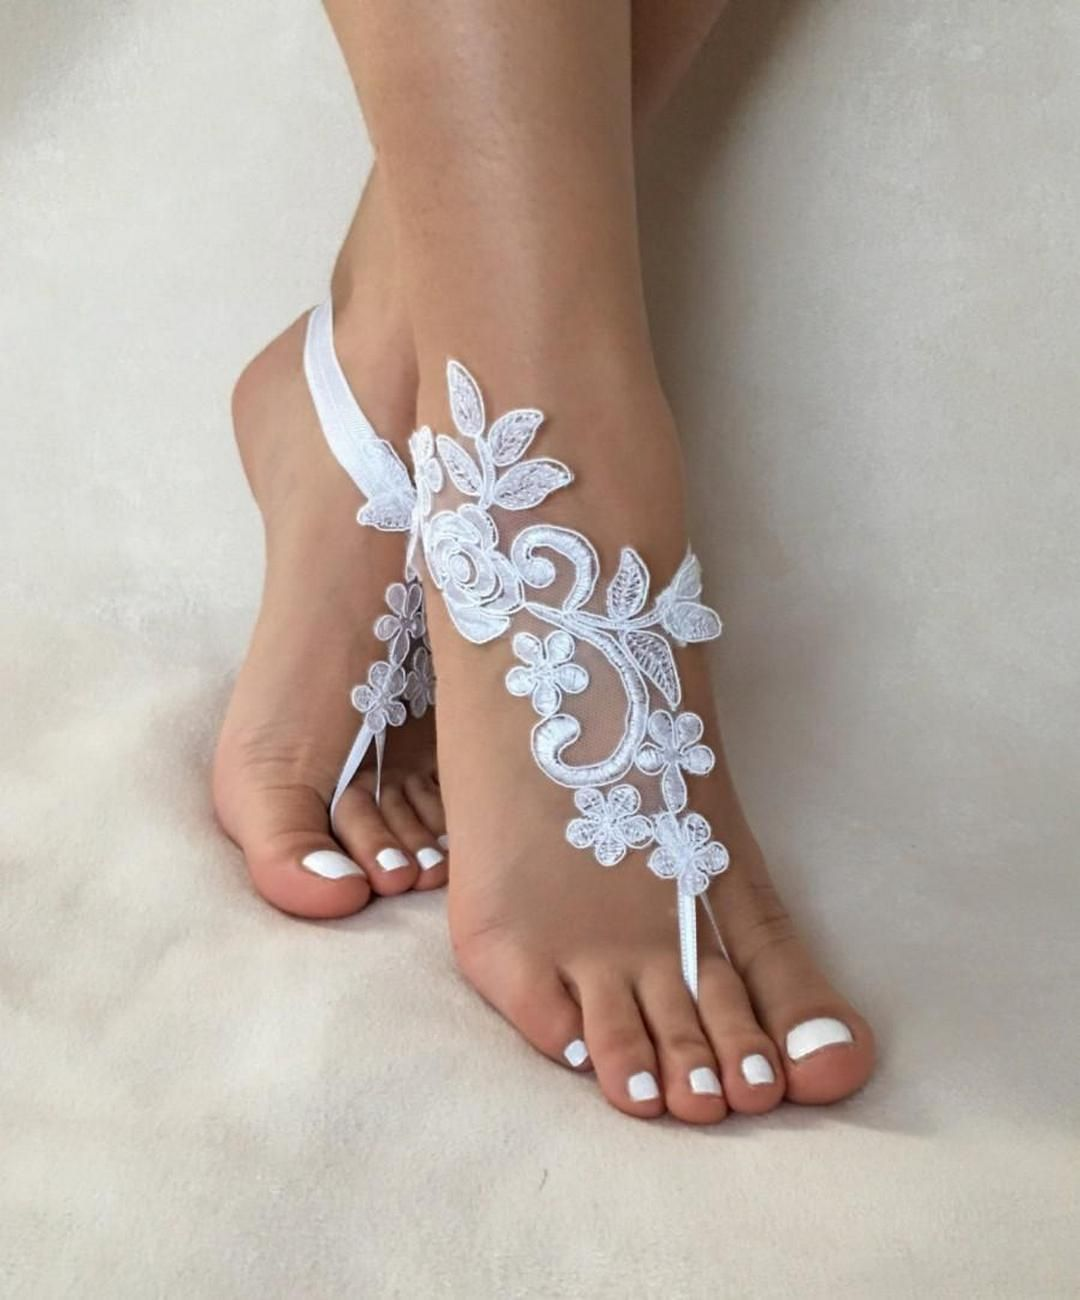 20 Beach Wedding Shoes And Sandals Ideas Beach Wedding Sandals Barefoot Wedding Beach Wedding Sandals Barefoot